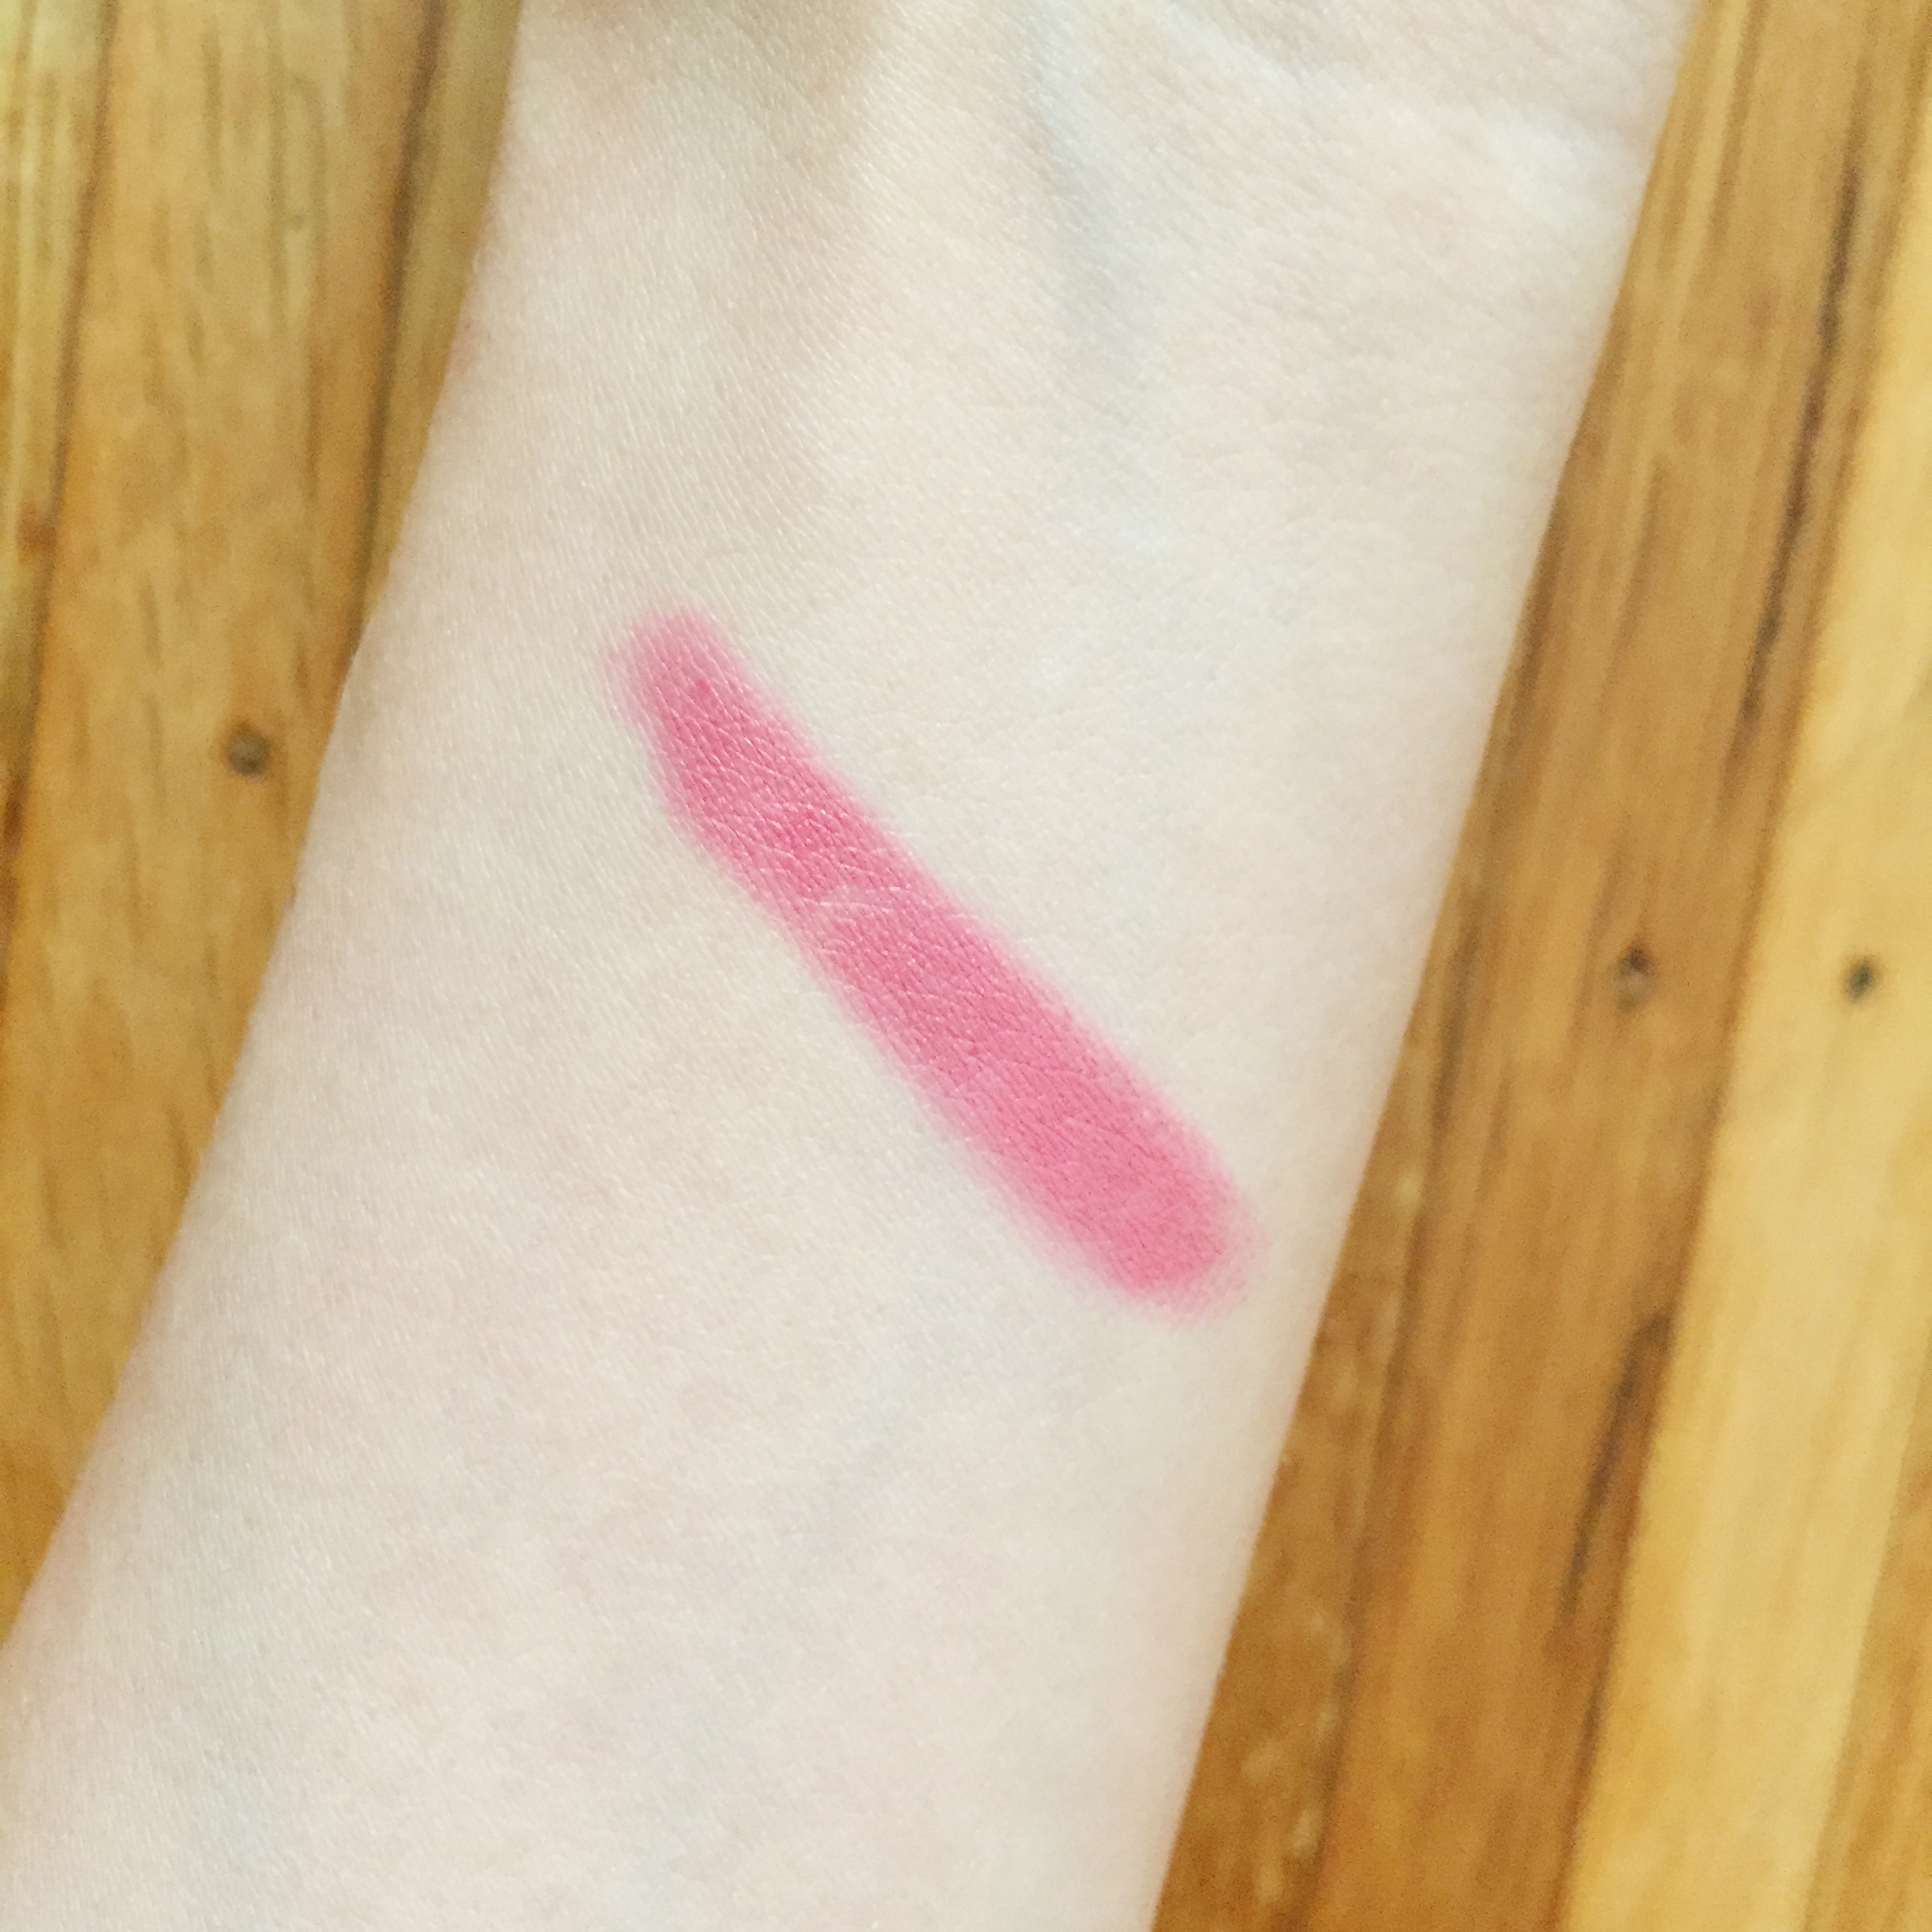 LAQA & Co. cheeky lip crayon in Humble Brag